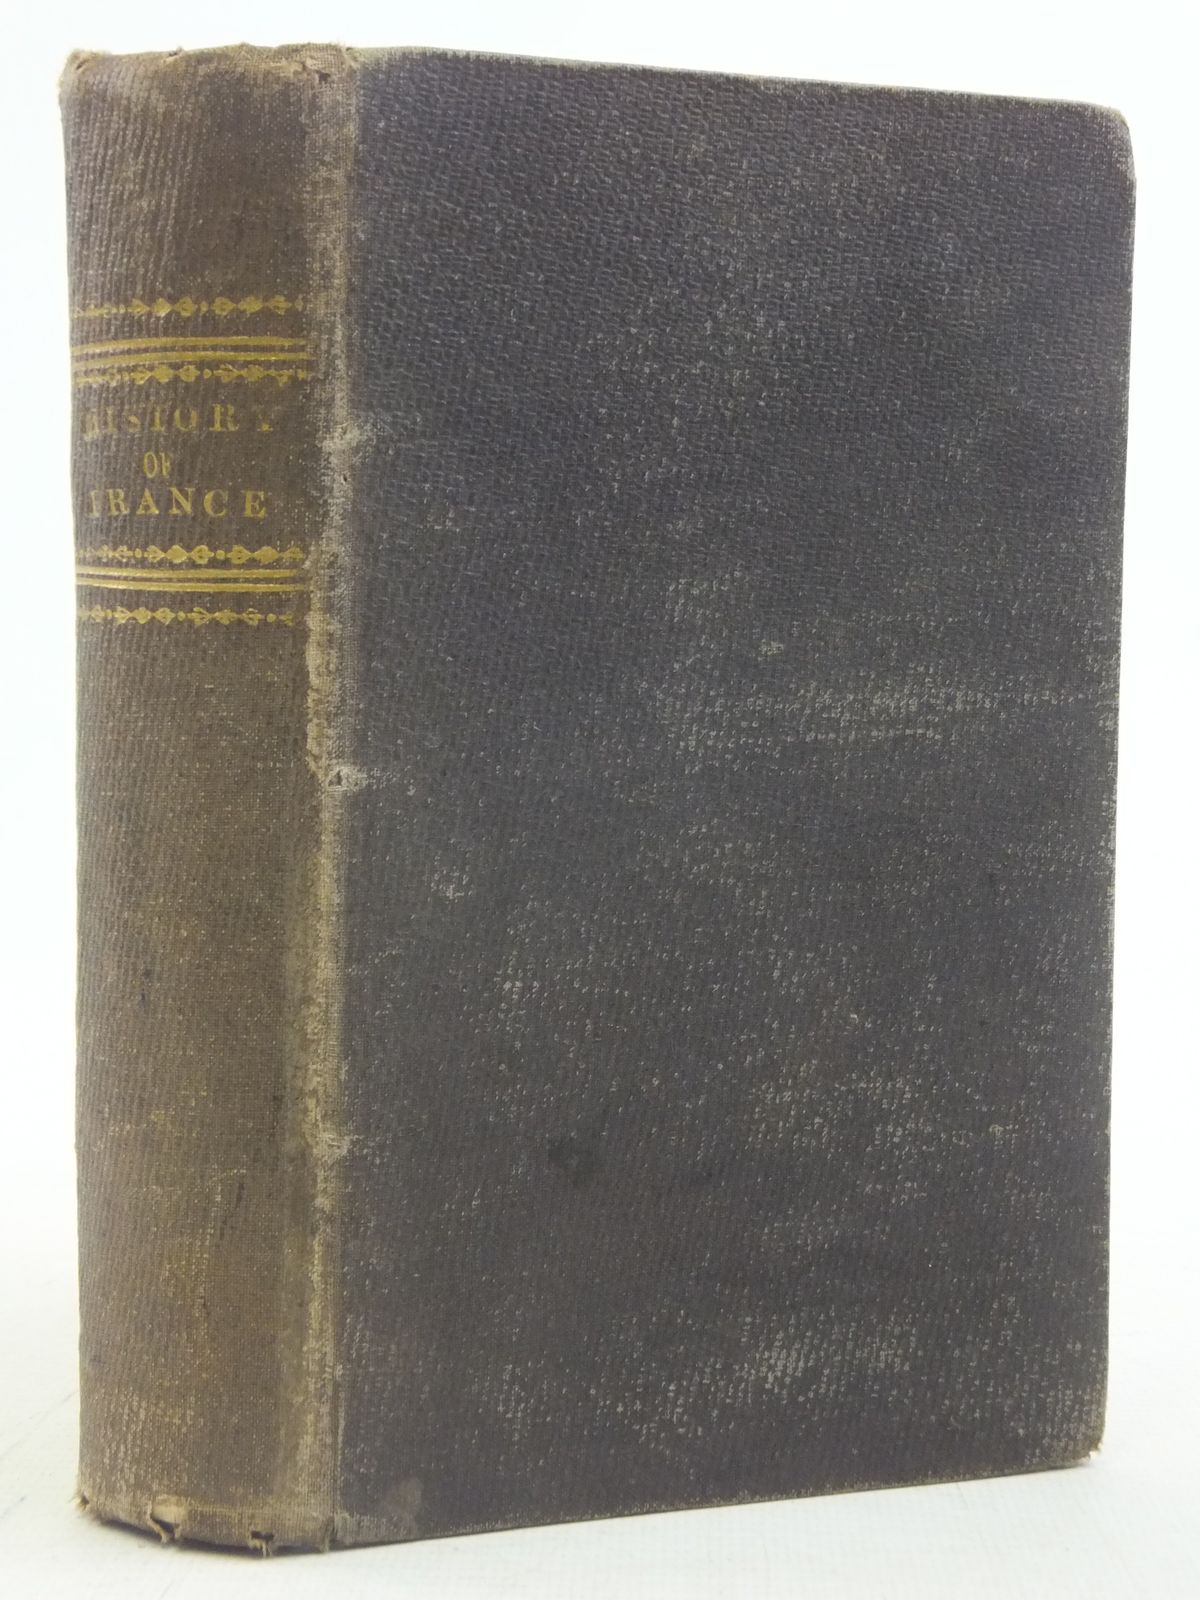 Photo of A HISTORY OF FRANCE written by Markham, Mrs. published by John Murray (STOCK CODE: 1605970)  for sale by Stella & Rose's Books